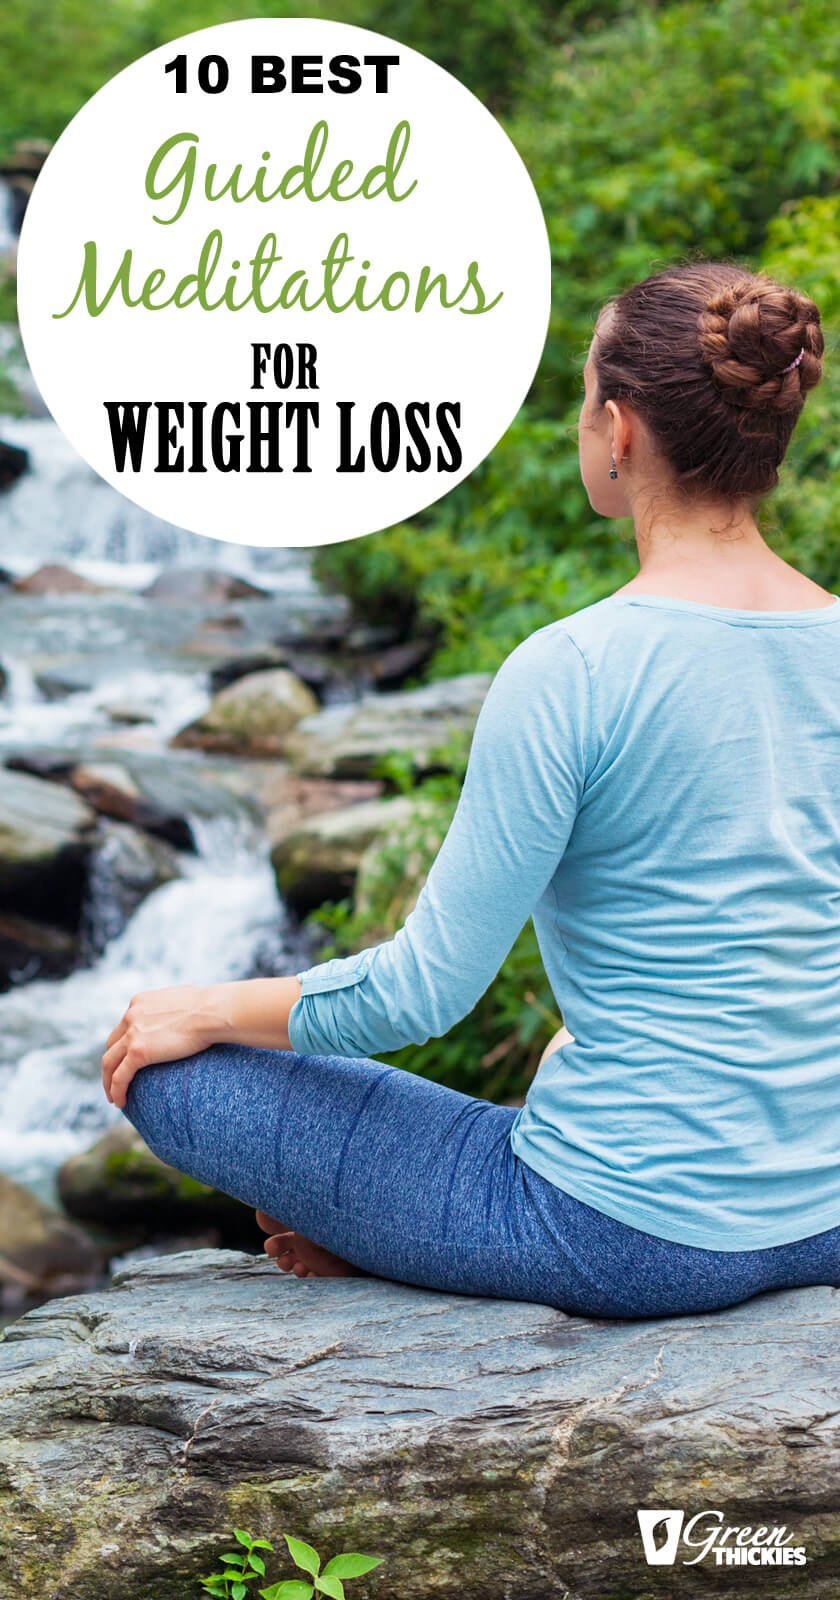 These 10 best guided meditations for weight loss will change your life.  Most people think the answer to weight loss is to go on a diet. But as we know from experience, going on a diet is often short lived and frustrating, often leading to failure and even more weight gain.  This is because we are missing out on one crucial step…  #meditations #guidedmeditations #freemeditations #meditationvideos #meditationsweightloss #loseweightmeditations #meditationforweightloss